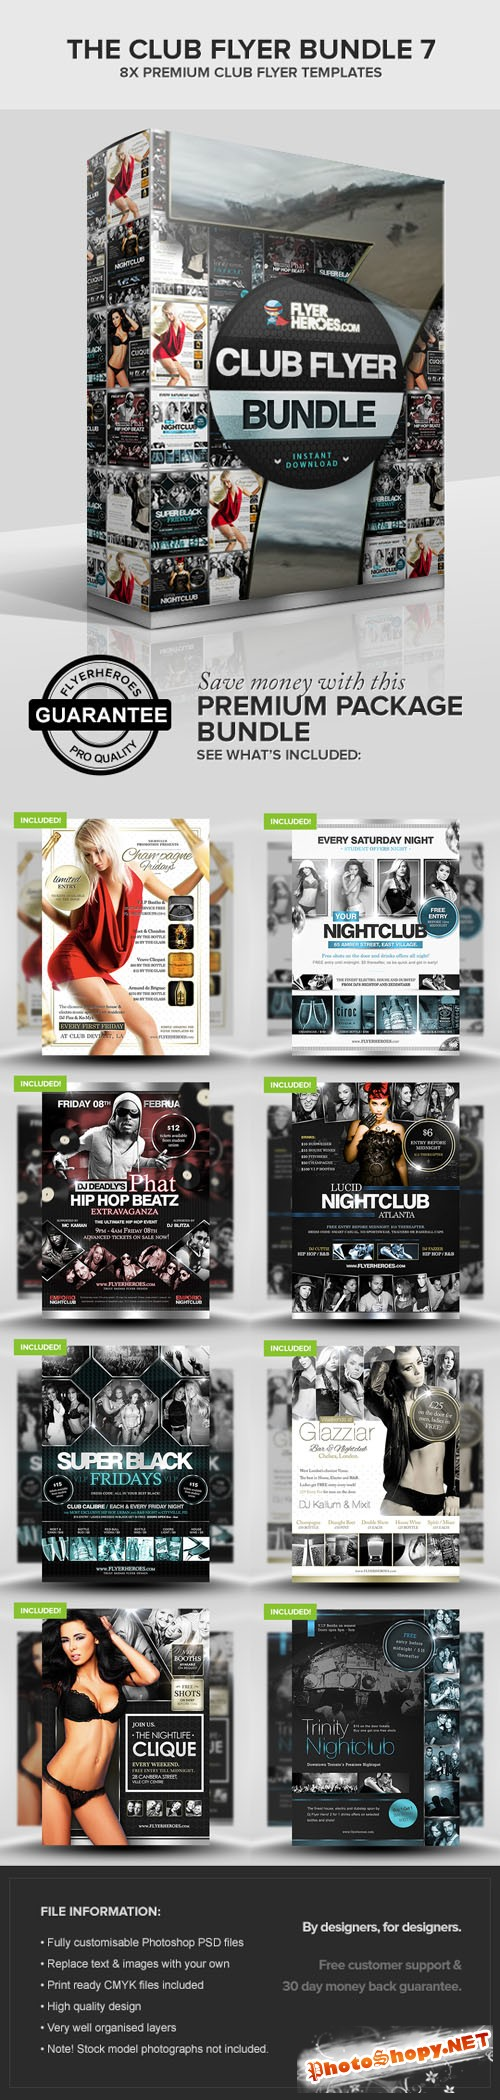 The Club Flyer Bundle 7